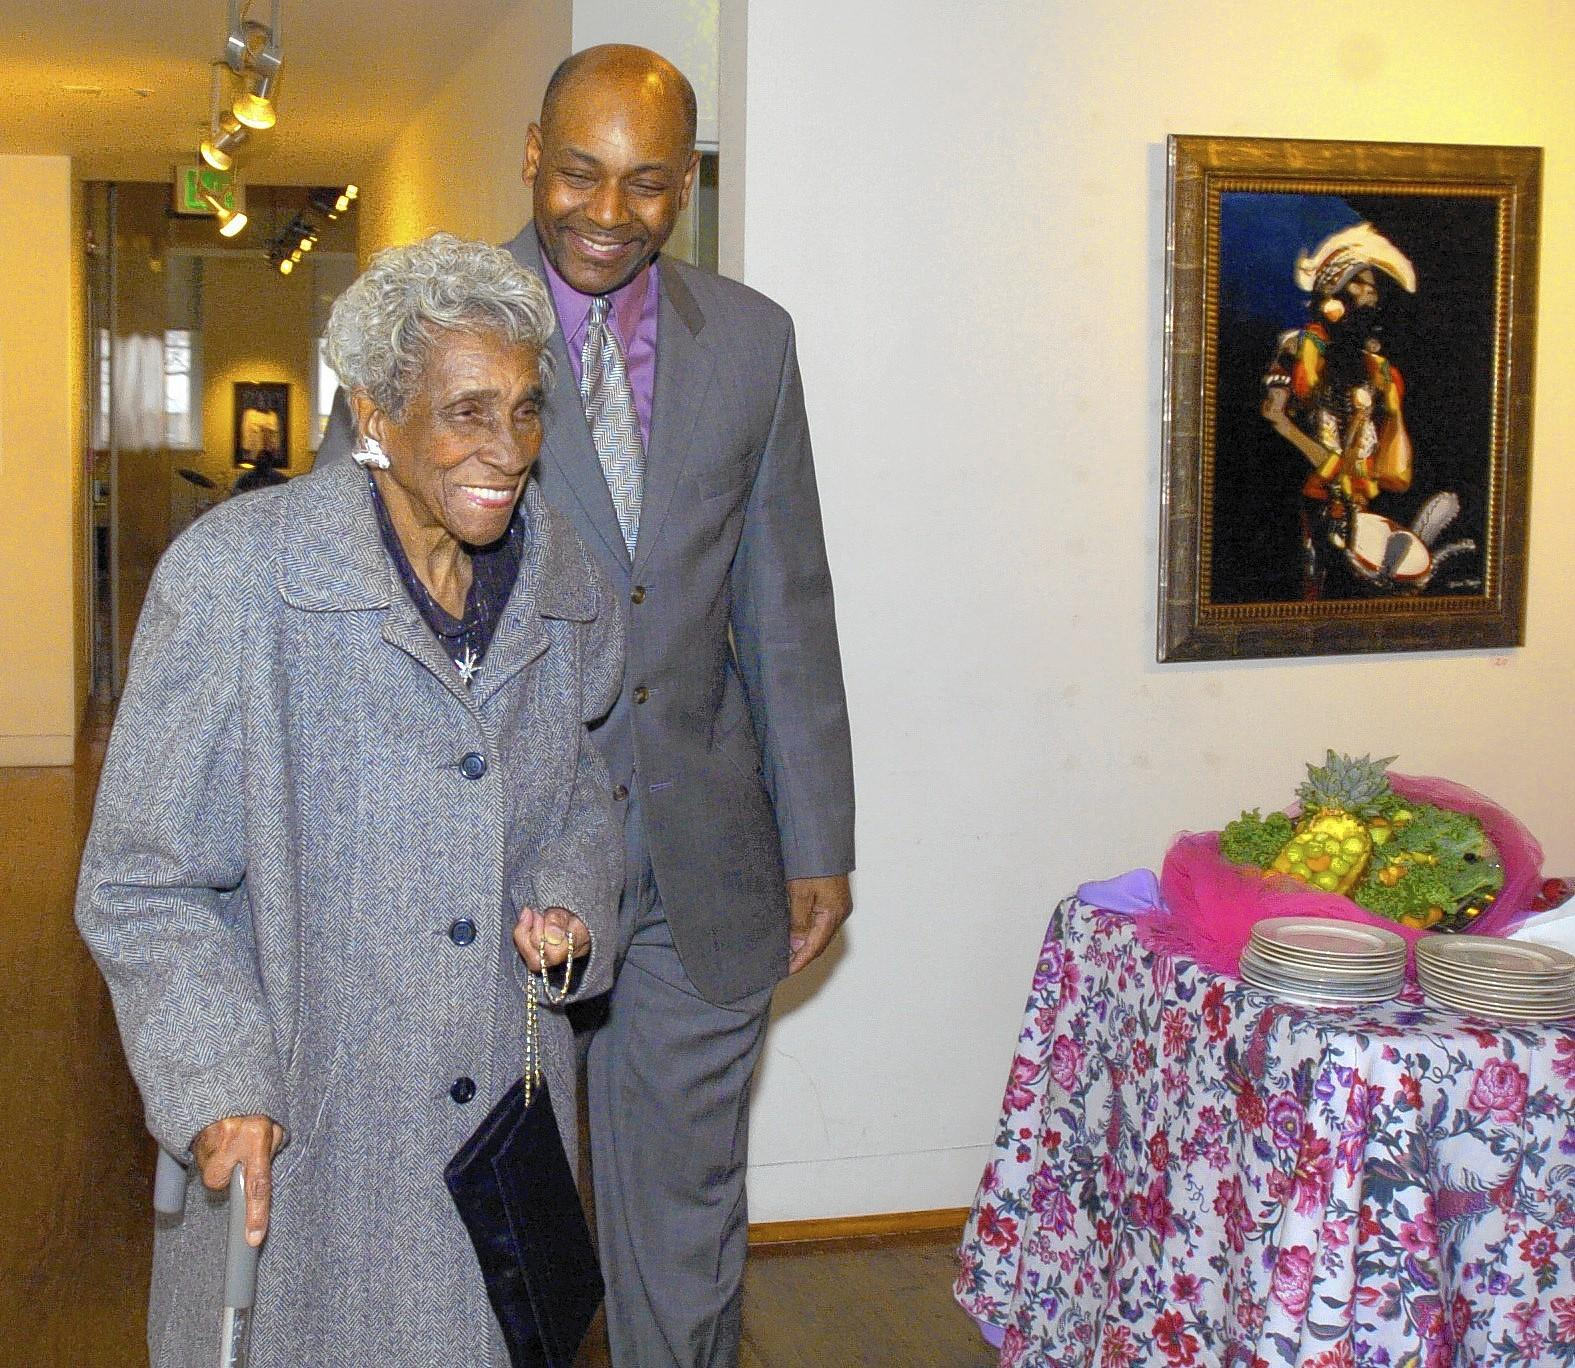 In 2006, former students of Dorothy Thomas, then 90, surprised her with a tribute luncheon at the Eubie Blake Center for her dedication as a teacher for 20 years at Windsor Hills Elementary School. A surpised Ms. Thomas, left, is escorted by Ray Nelson, right, her student from 1971, as she arrives for the luncheon.